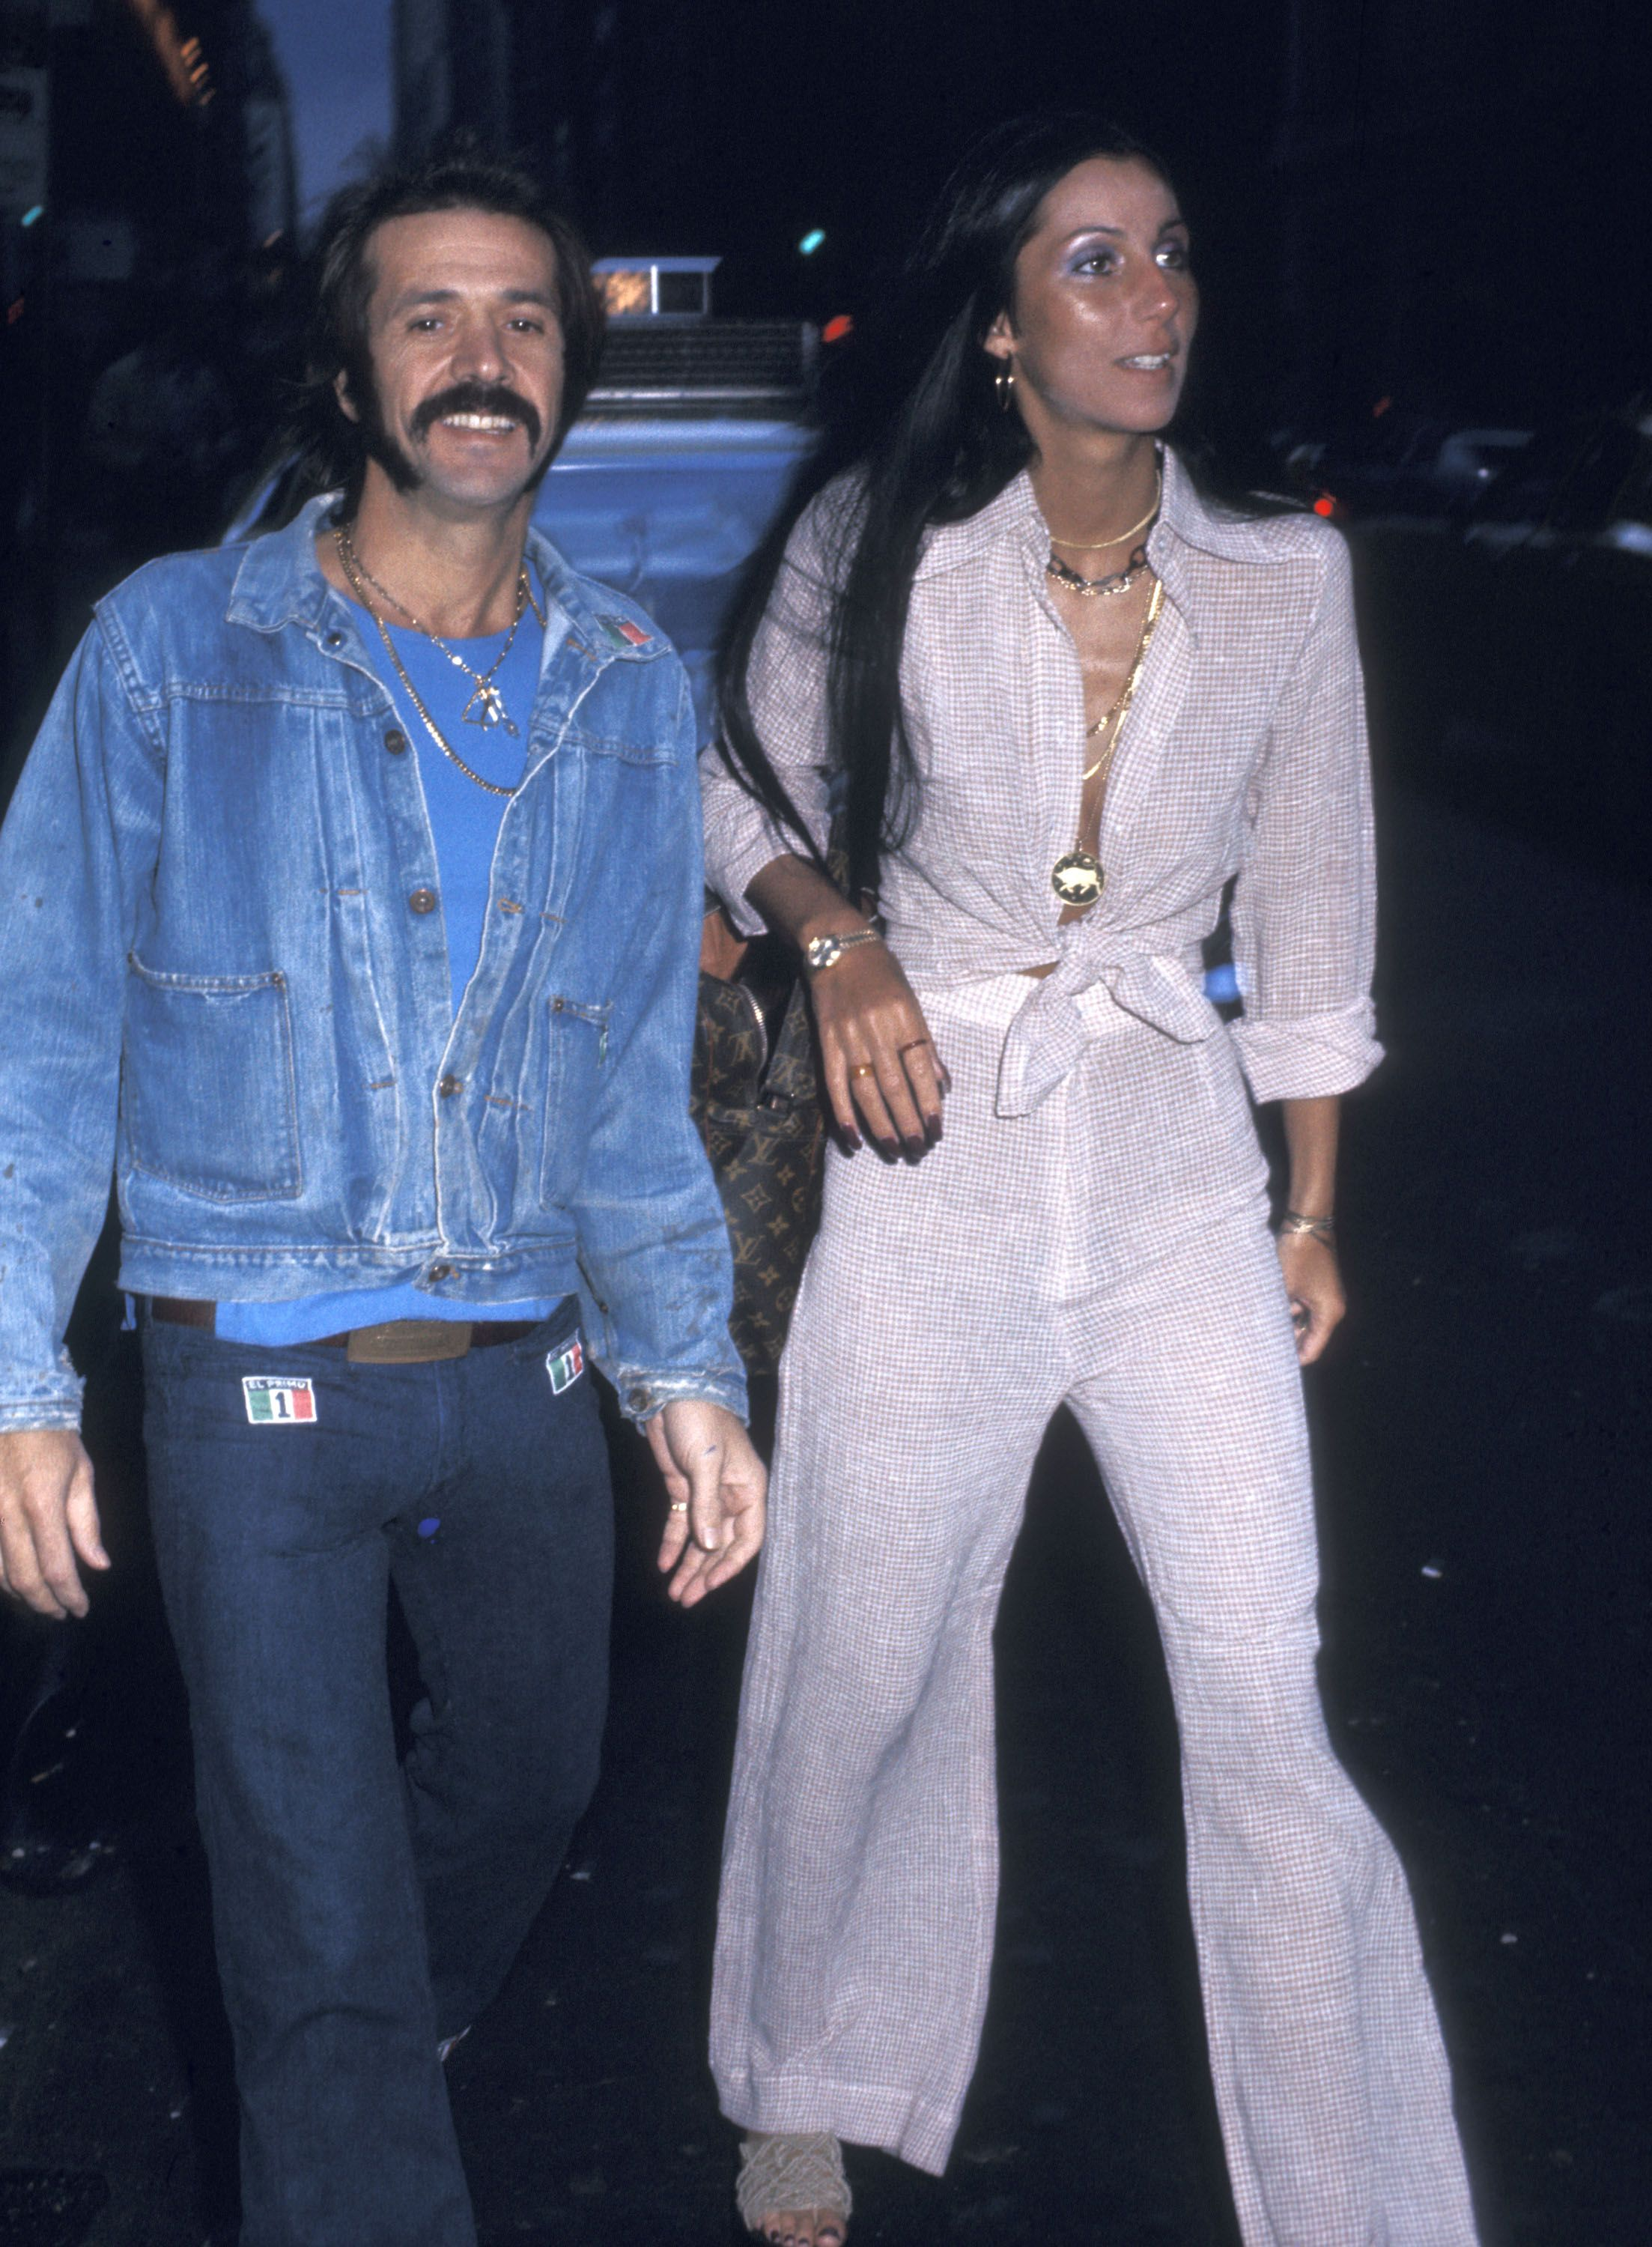 Cher's Best Outfits and Fashion Moments Over The Years - Cher ...